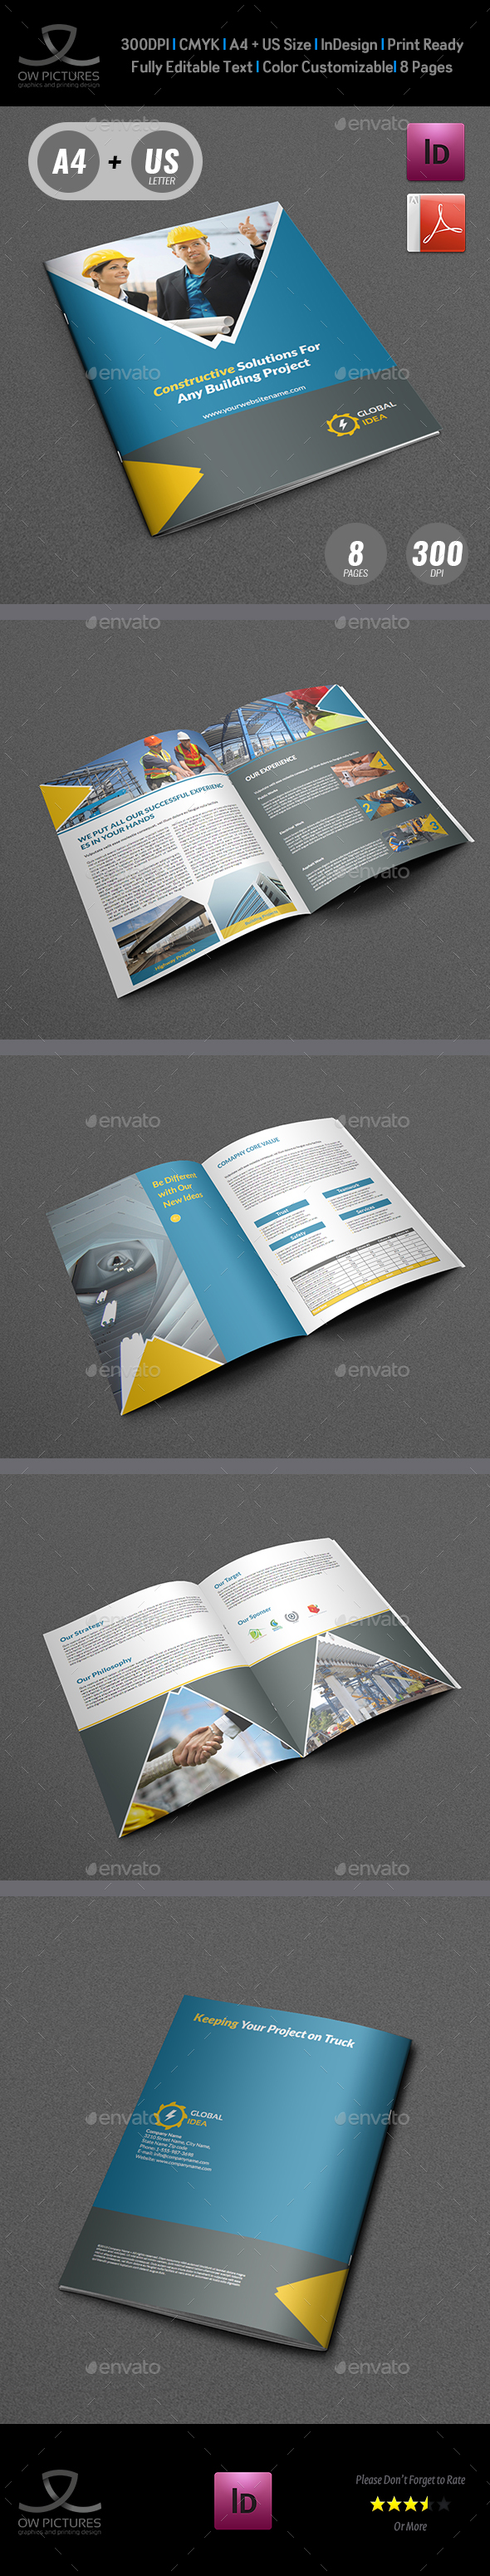 Construction Business Brochure Template - 8 Pages - Brochures Print Templates